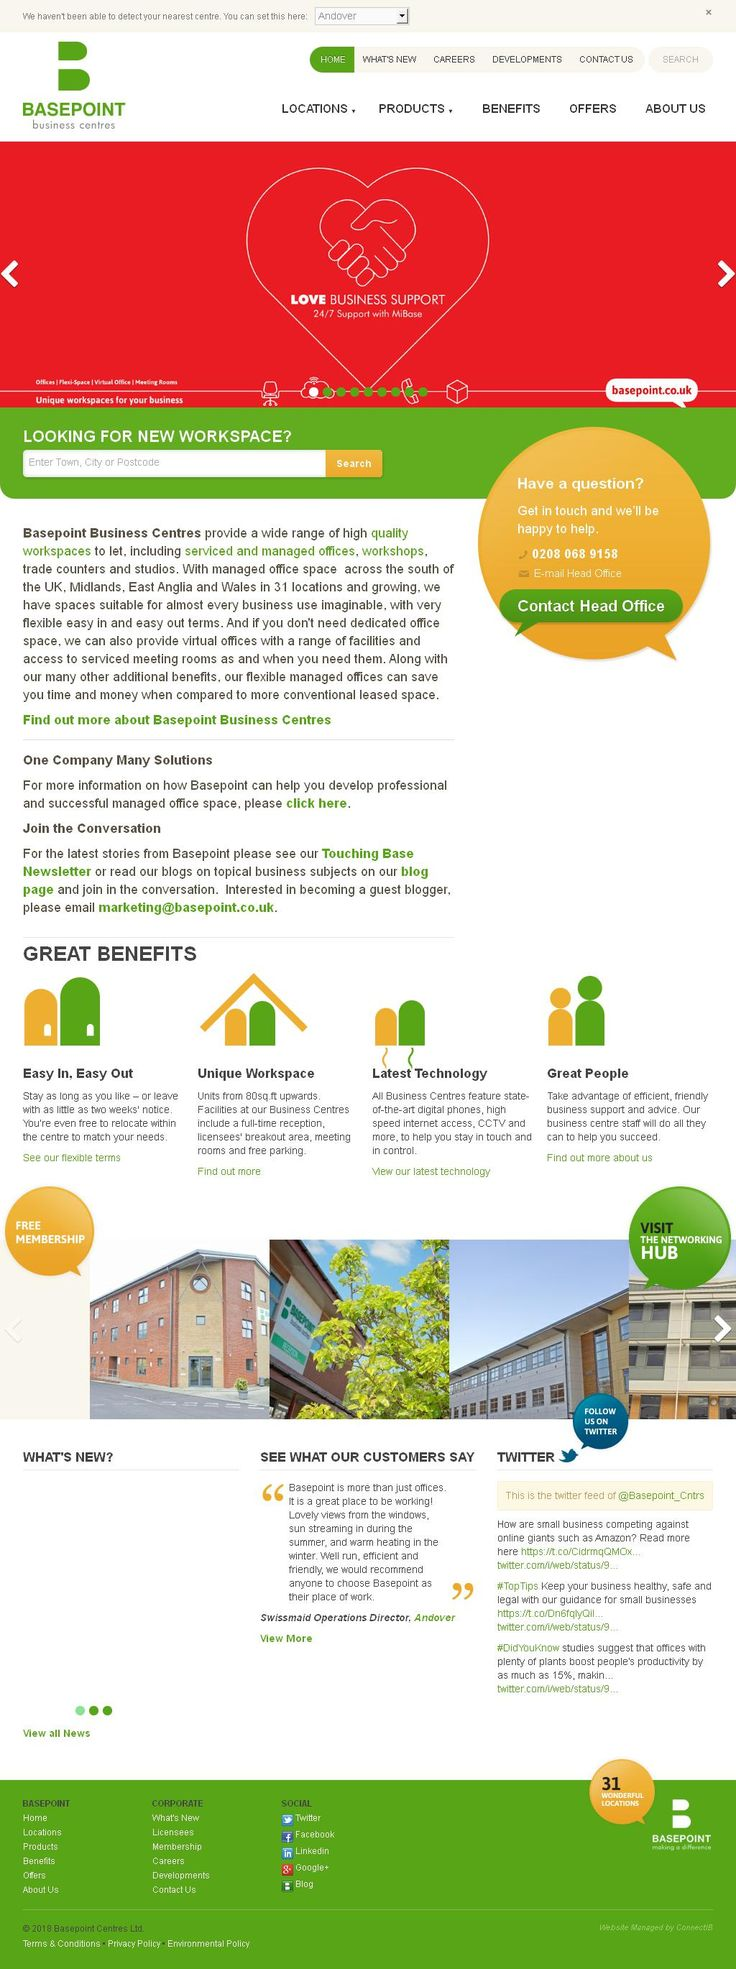 Broadmarsh Business & Innovation Centre Business Services Broadmarsh Business & Innovation Centre Harts Farm Way  Havant Hampshire PO9 1HS | To get more infomration about Broadmarsh Business & Innovation Centre, Location Map, Phone numbers, Email, Website please visit http://www.HaiUK.co.uk